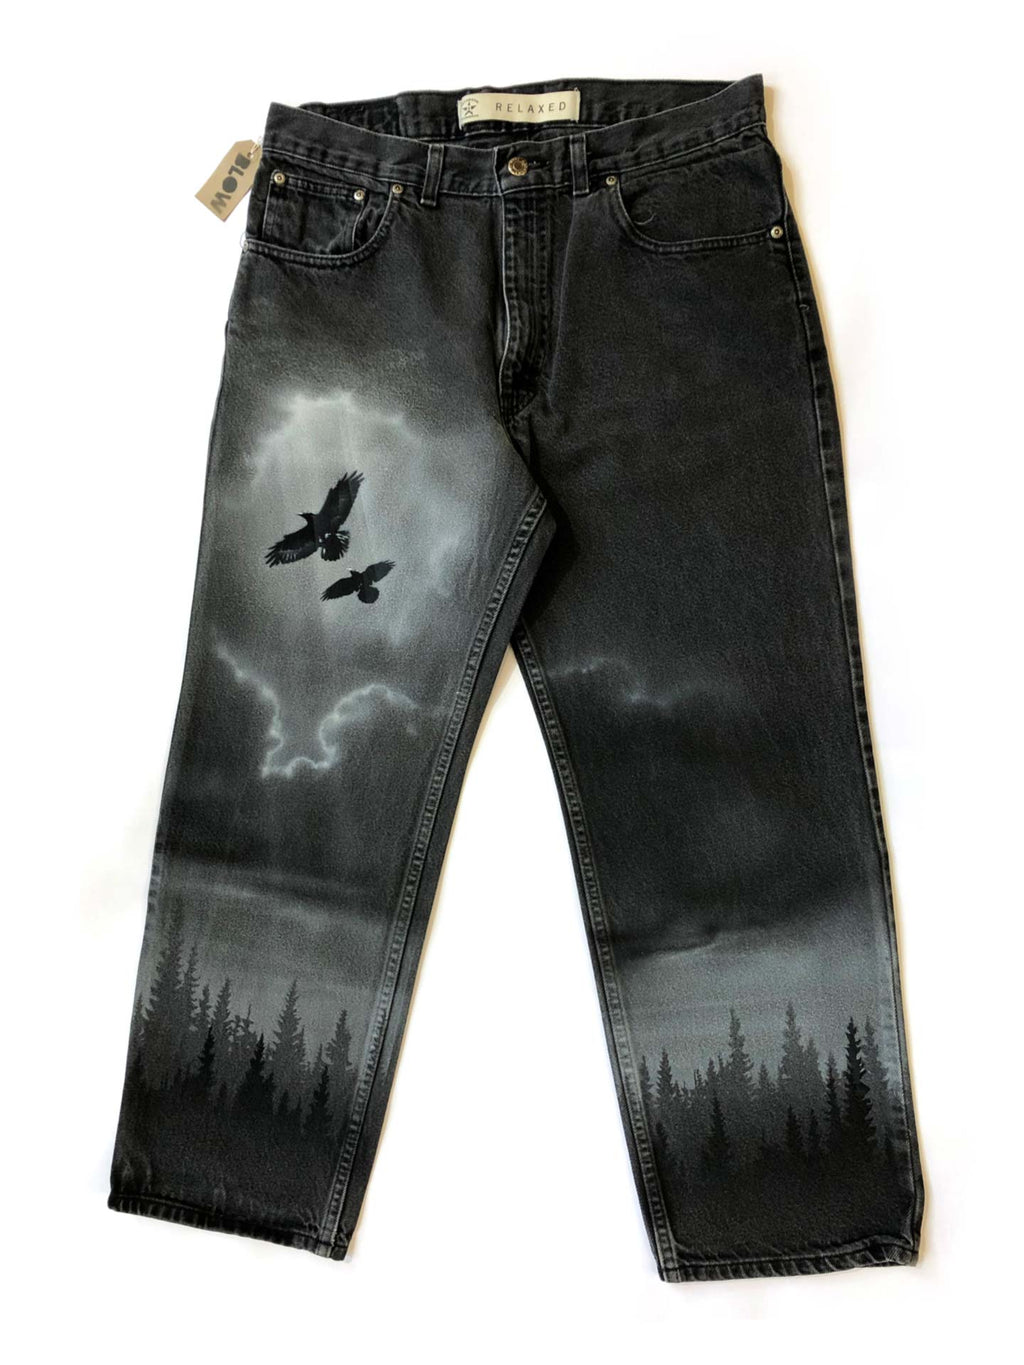 WINTER DAWN - Upcycled black denim jeans